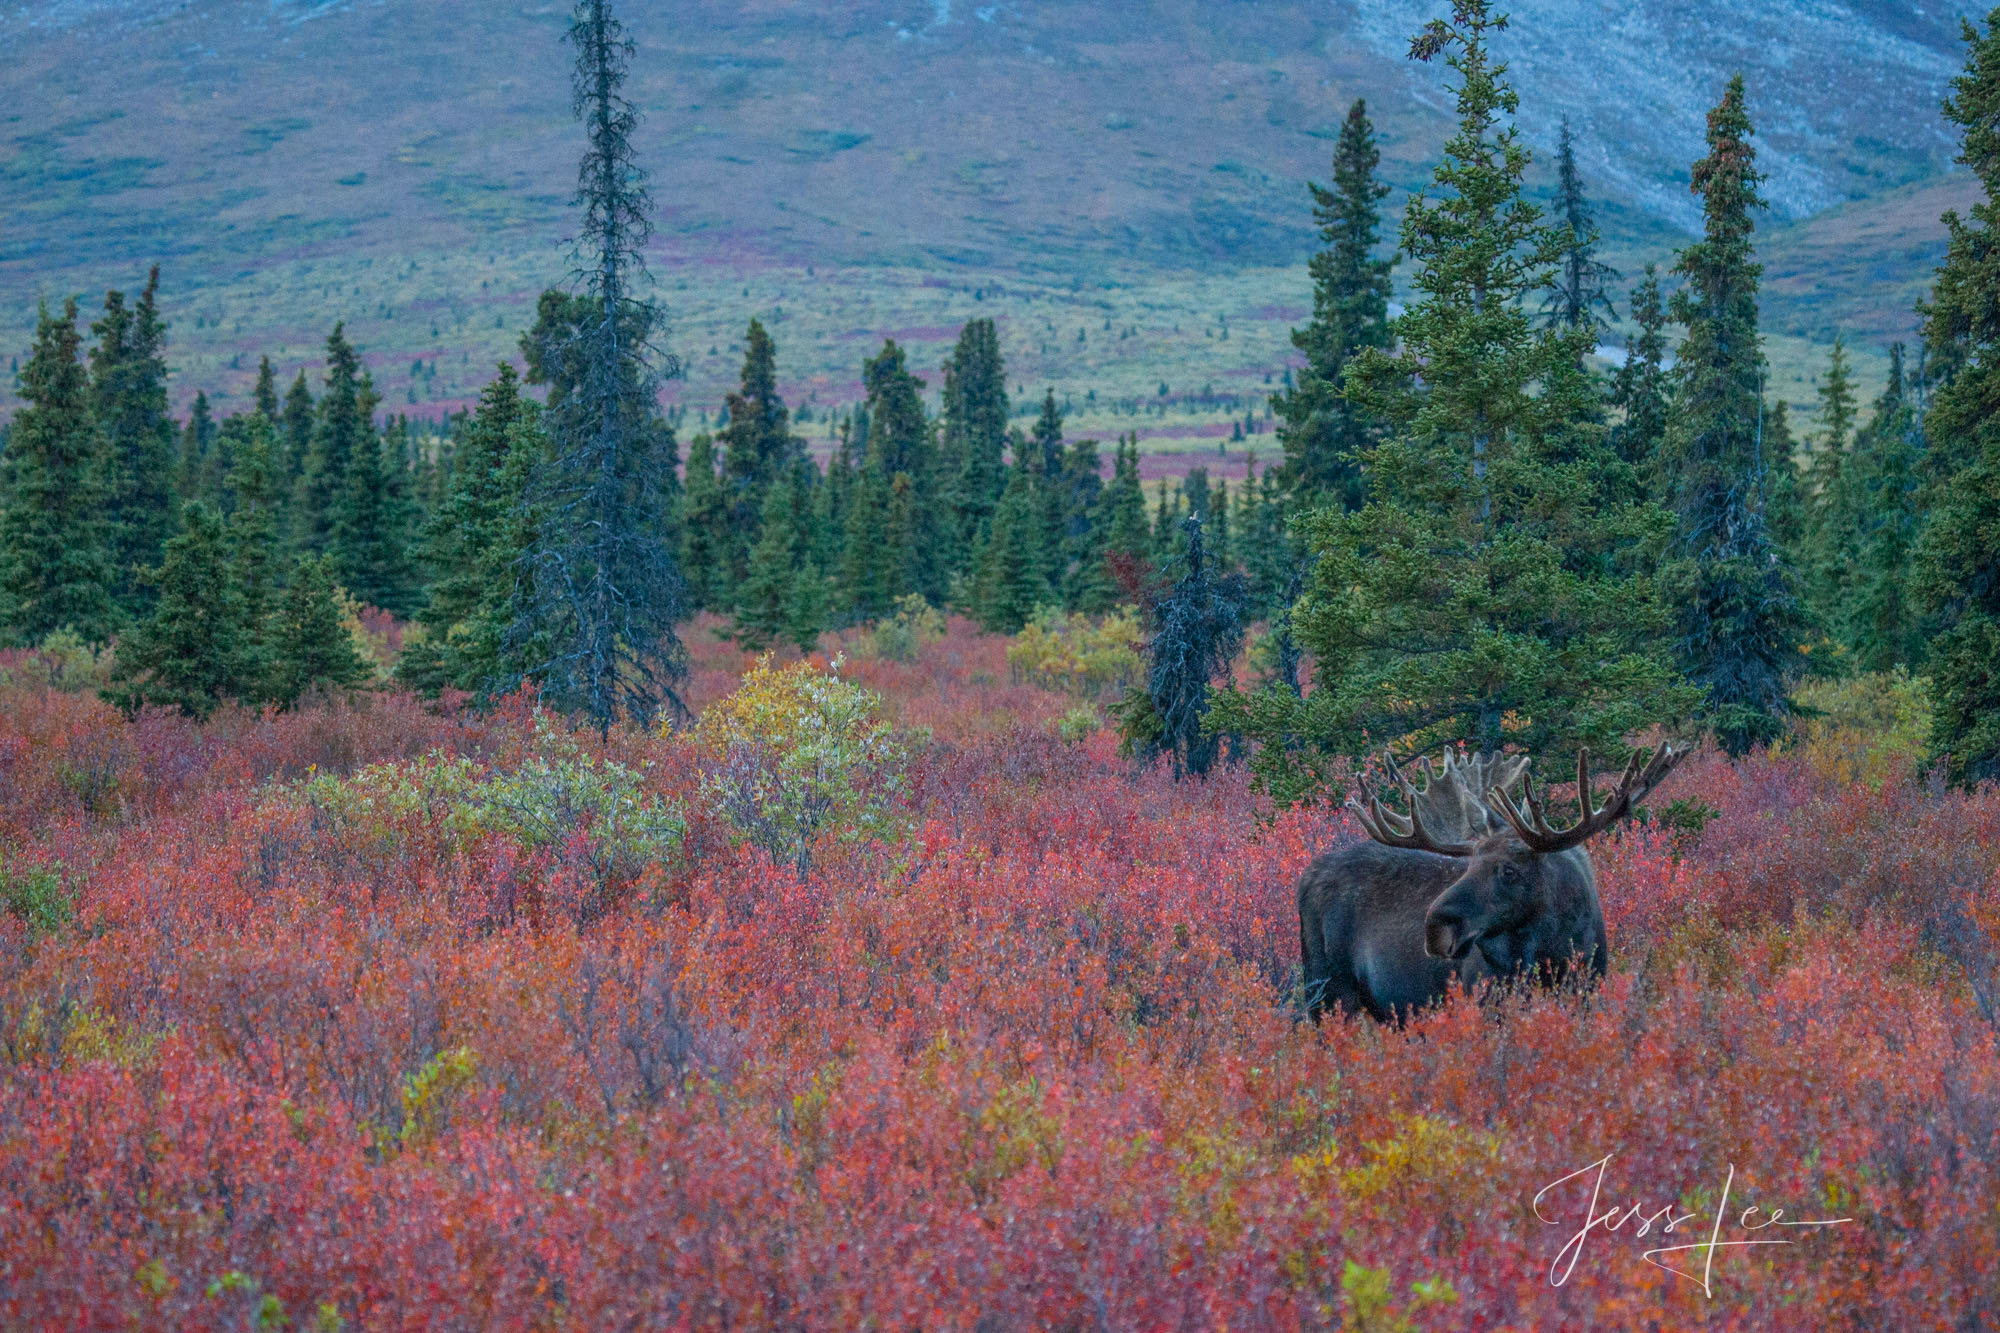 Denali Moose, a limited edition of 800 prints. These Moose fine art Wildlife photographs are offered as high quality prints for...